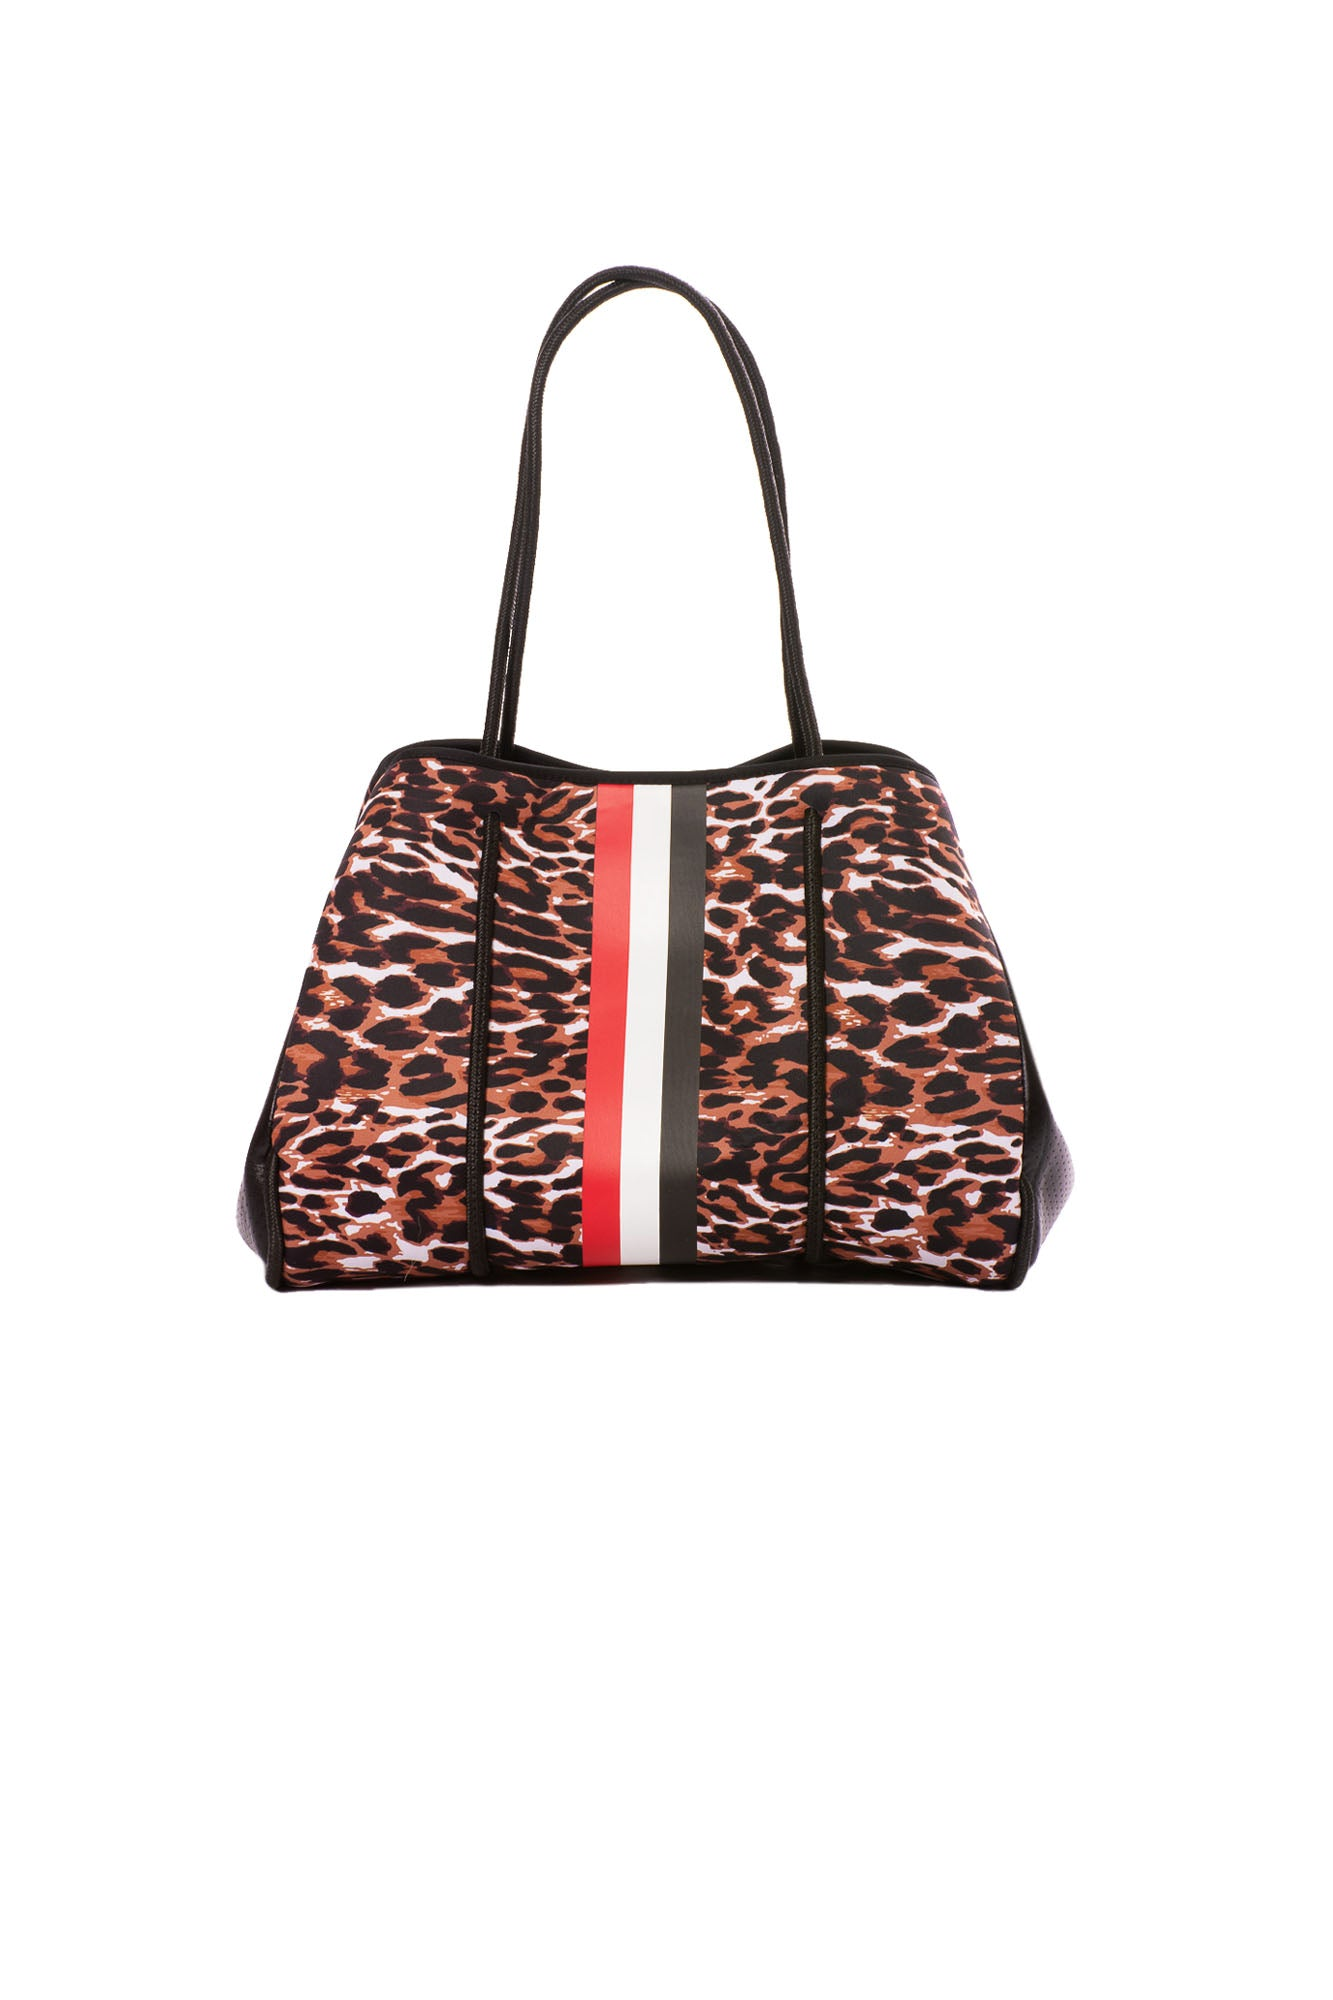 Haute Shore - Greyson Wild Neoprene Tote Bag w/Zipper Wristlet Inside (Wild, Leopard w/Black, Red, White Stripe)